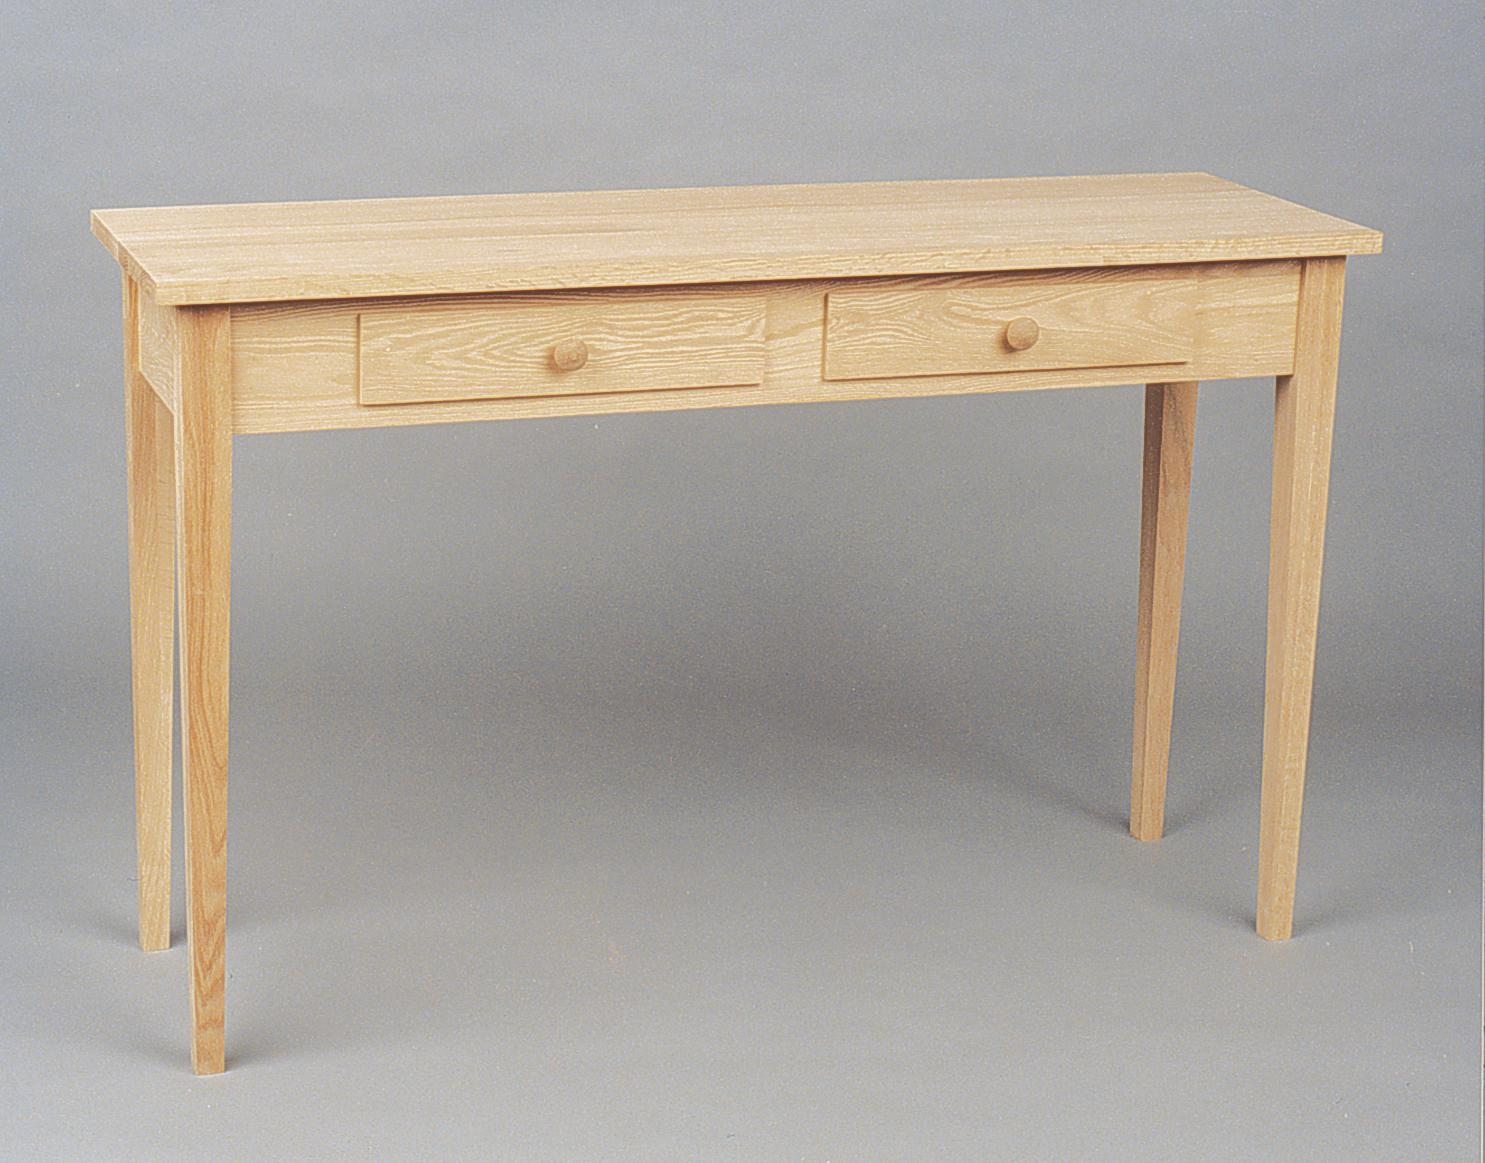 Sofa Table W/ 2 Drawers With Shaker Sofas (Image 16 of 20)